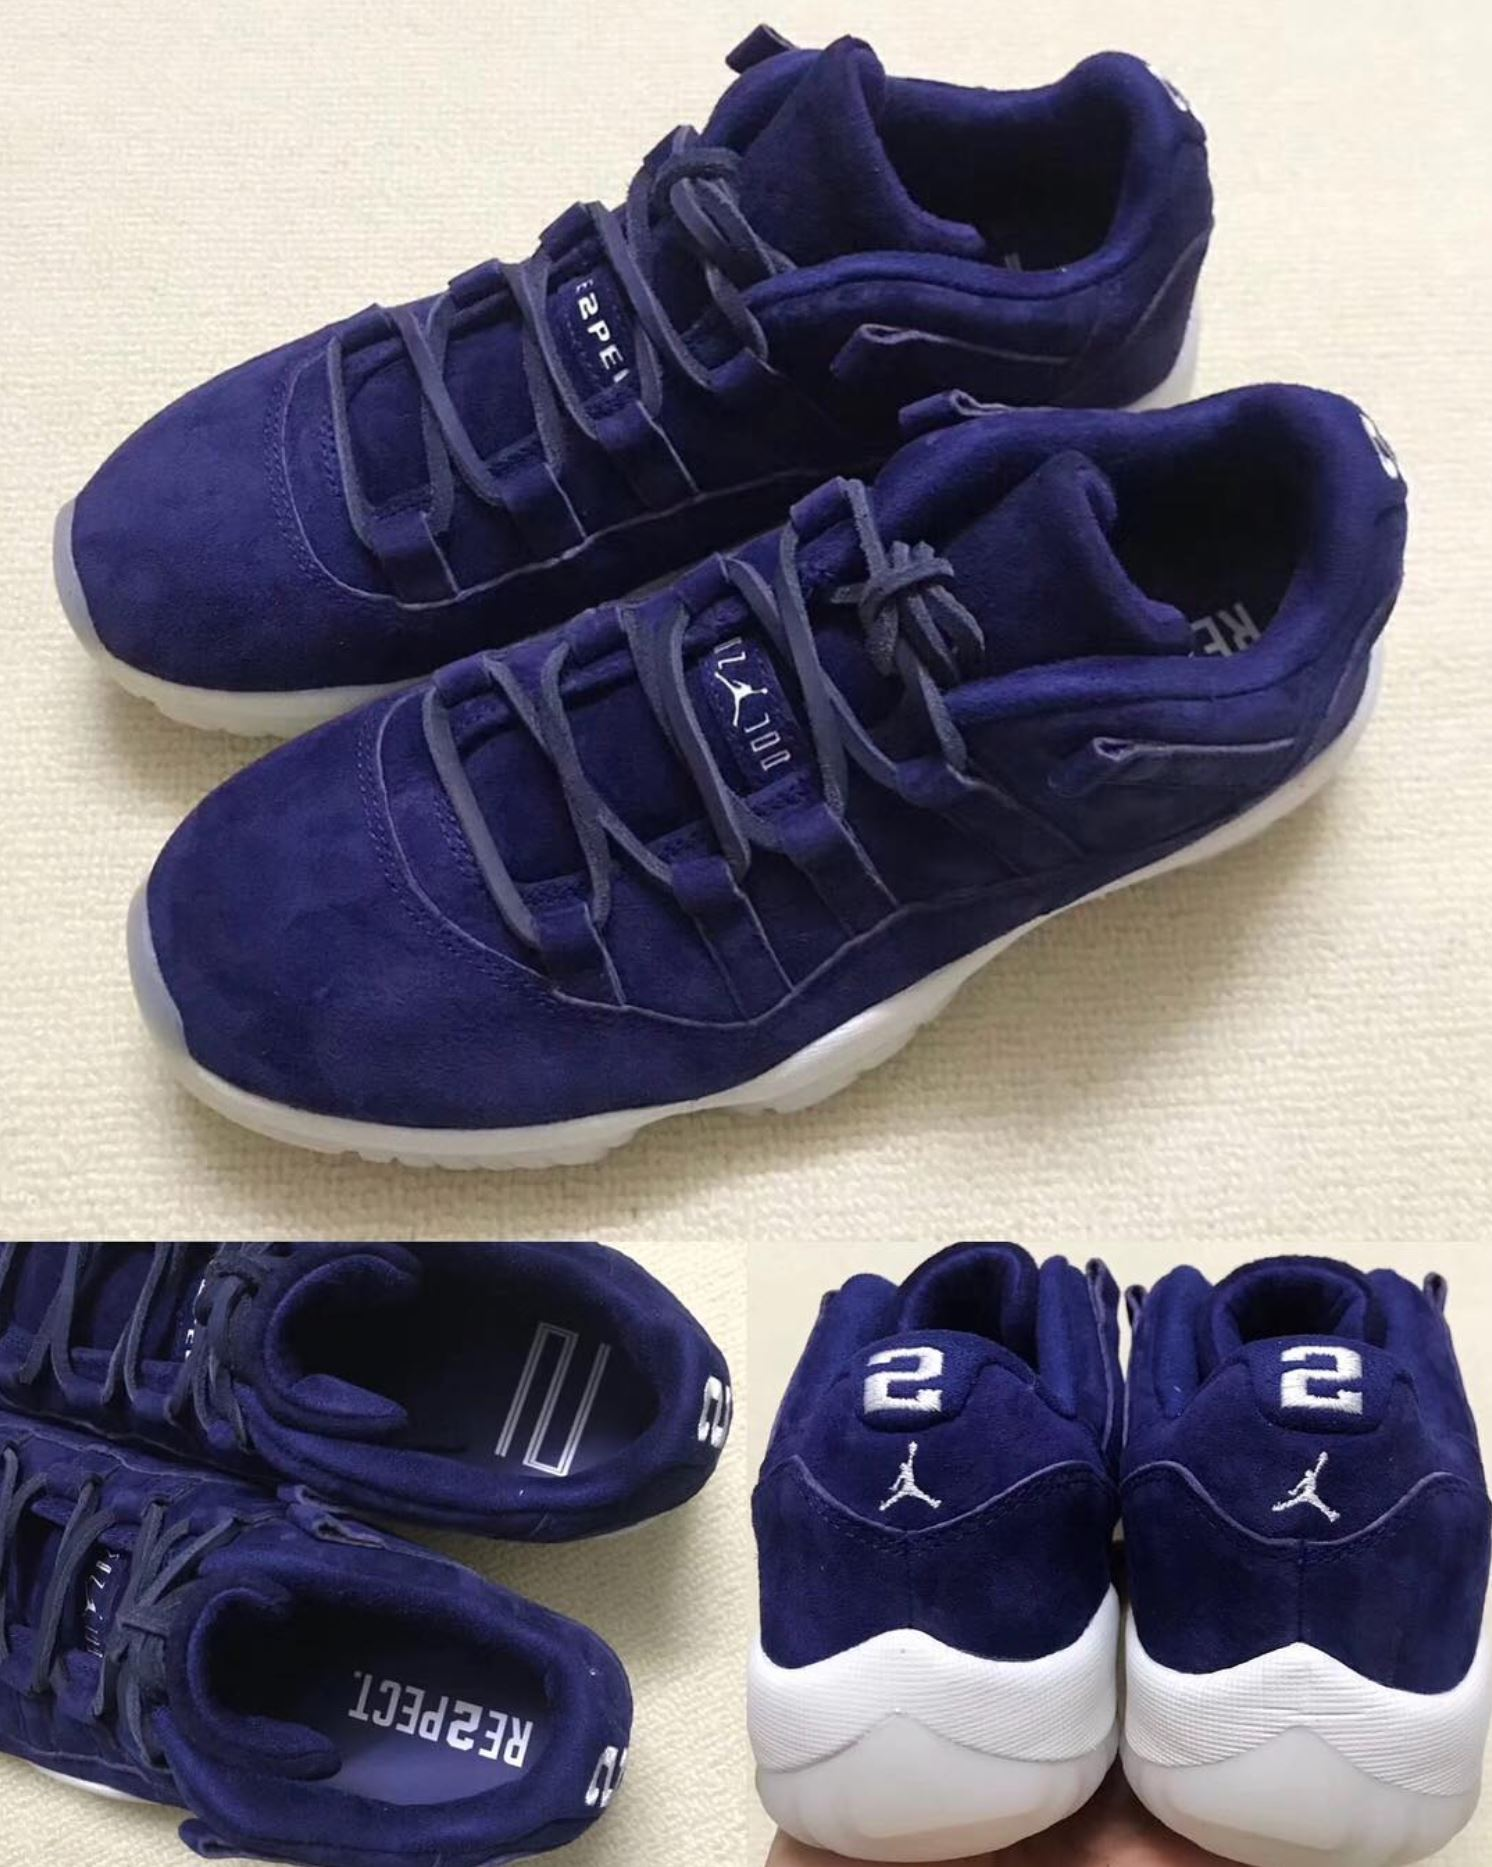 separation shoes 8cd8a f267b Expect the Air Jordan 11 Low 'RE2PECT' to Arrive in April ...